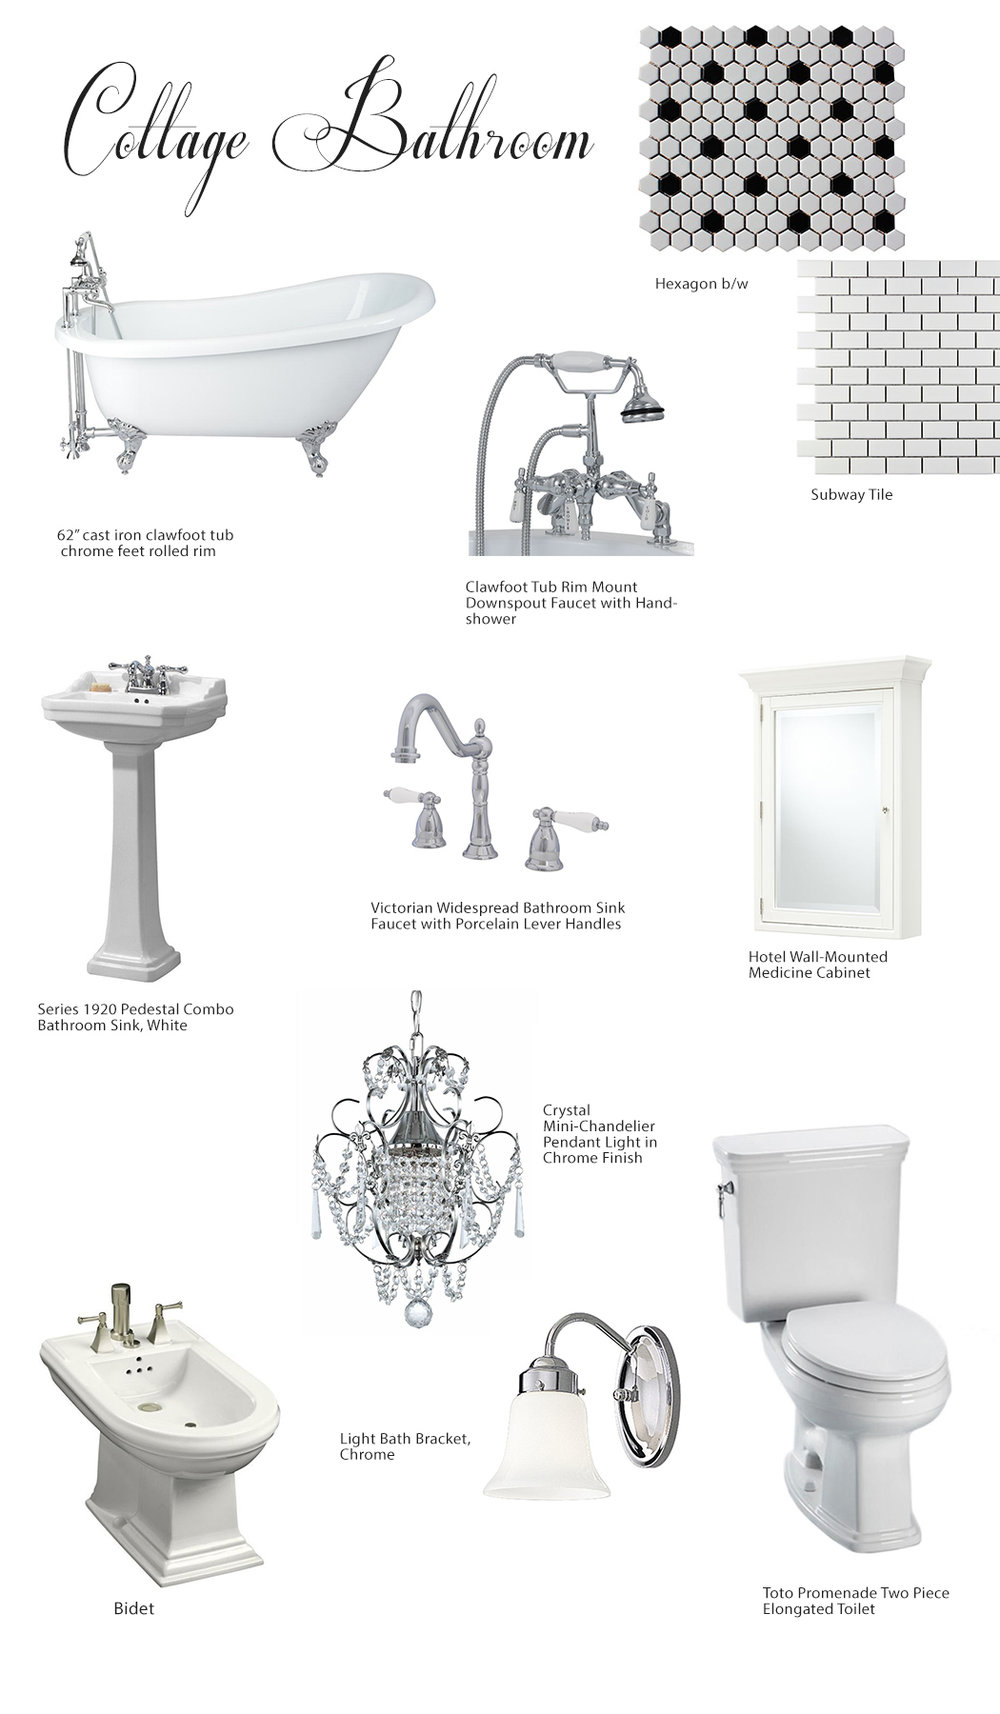 Bathroom Design Board miami bathroom remodeling: cottage bathroom mood board